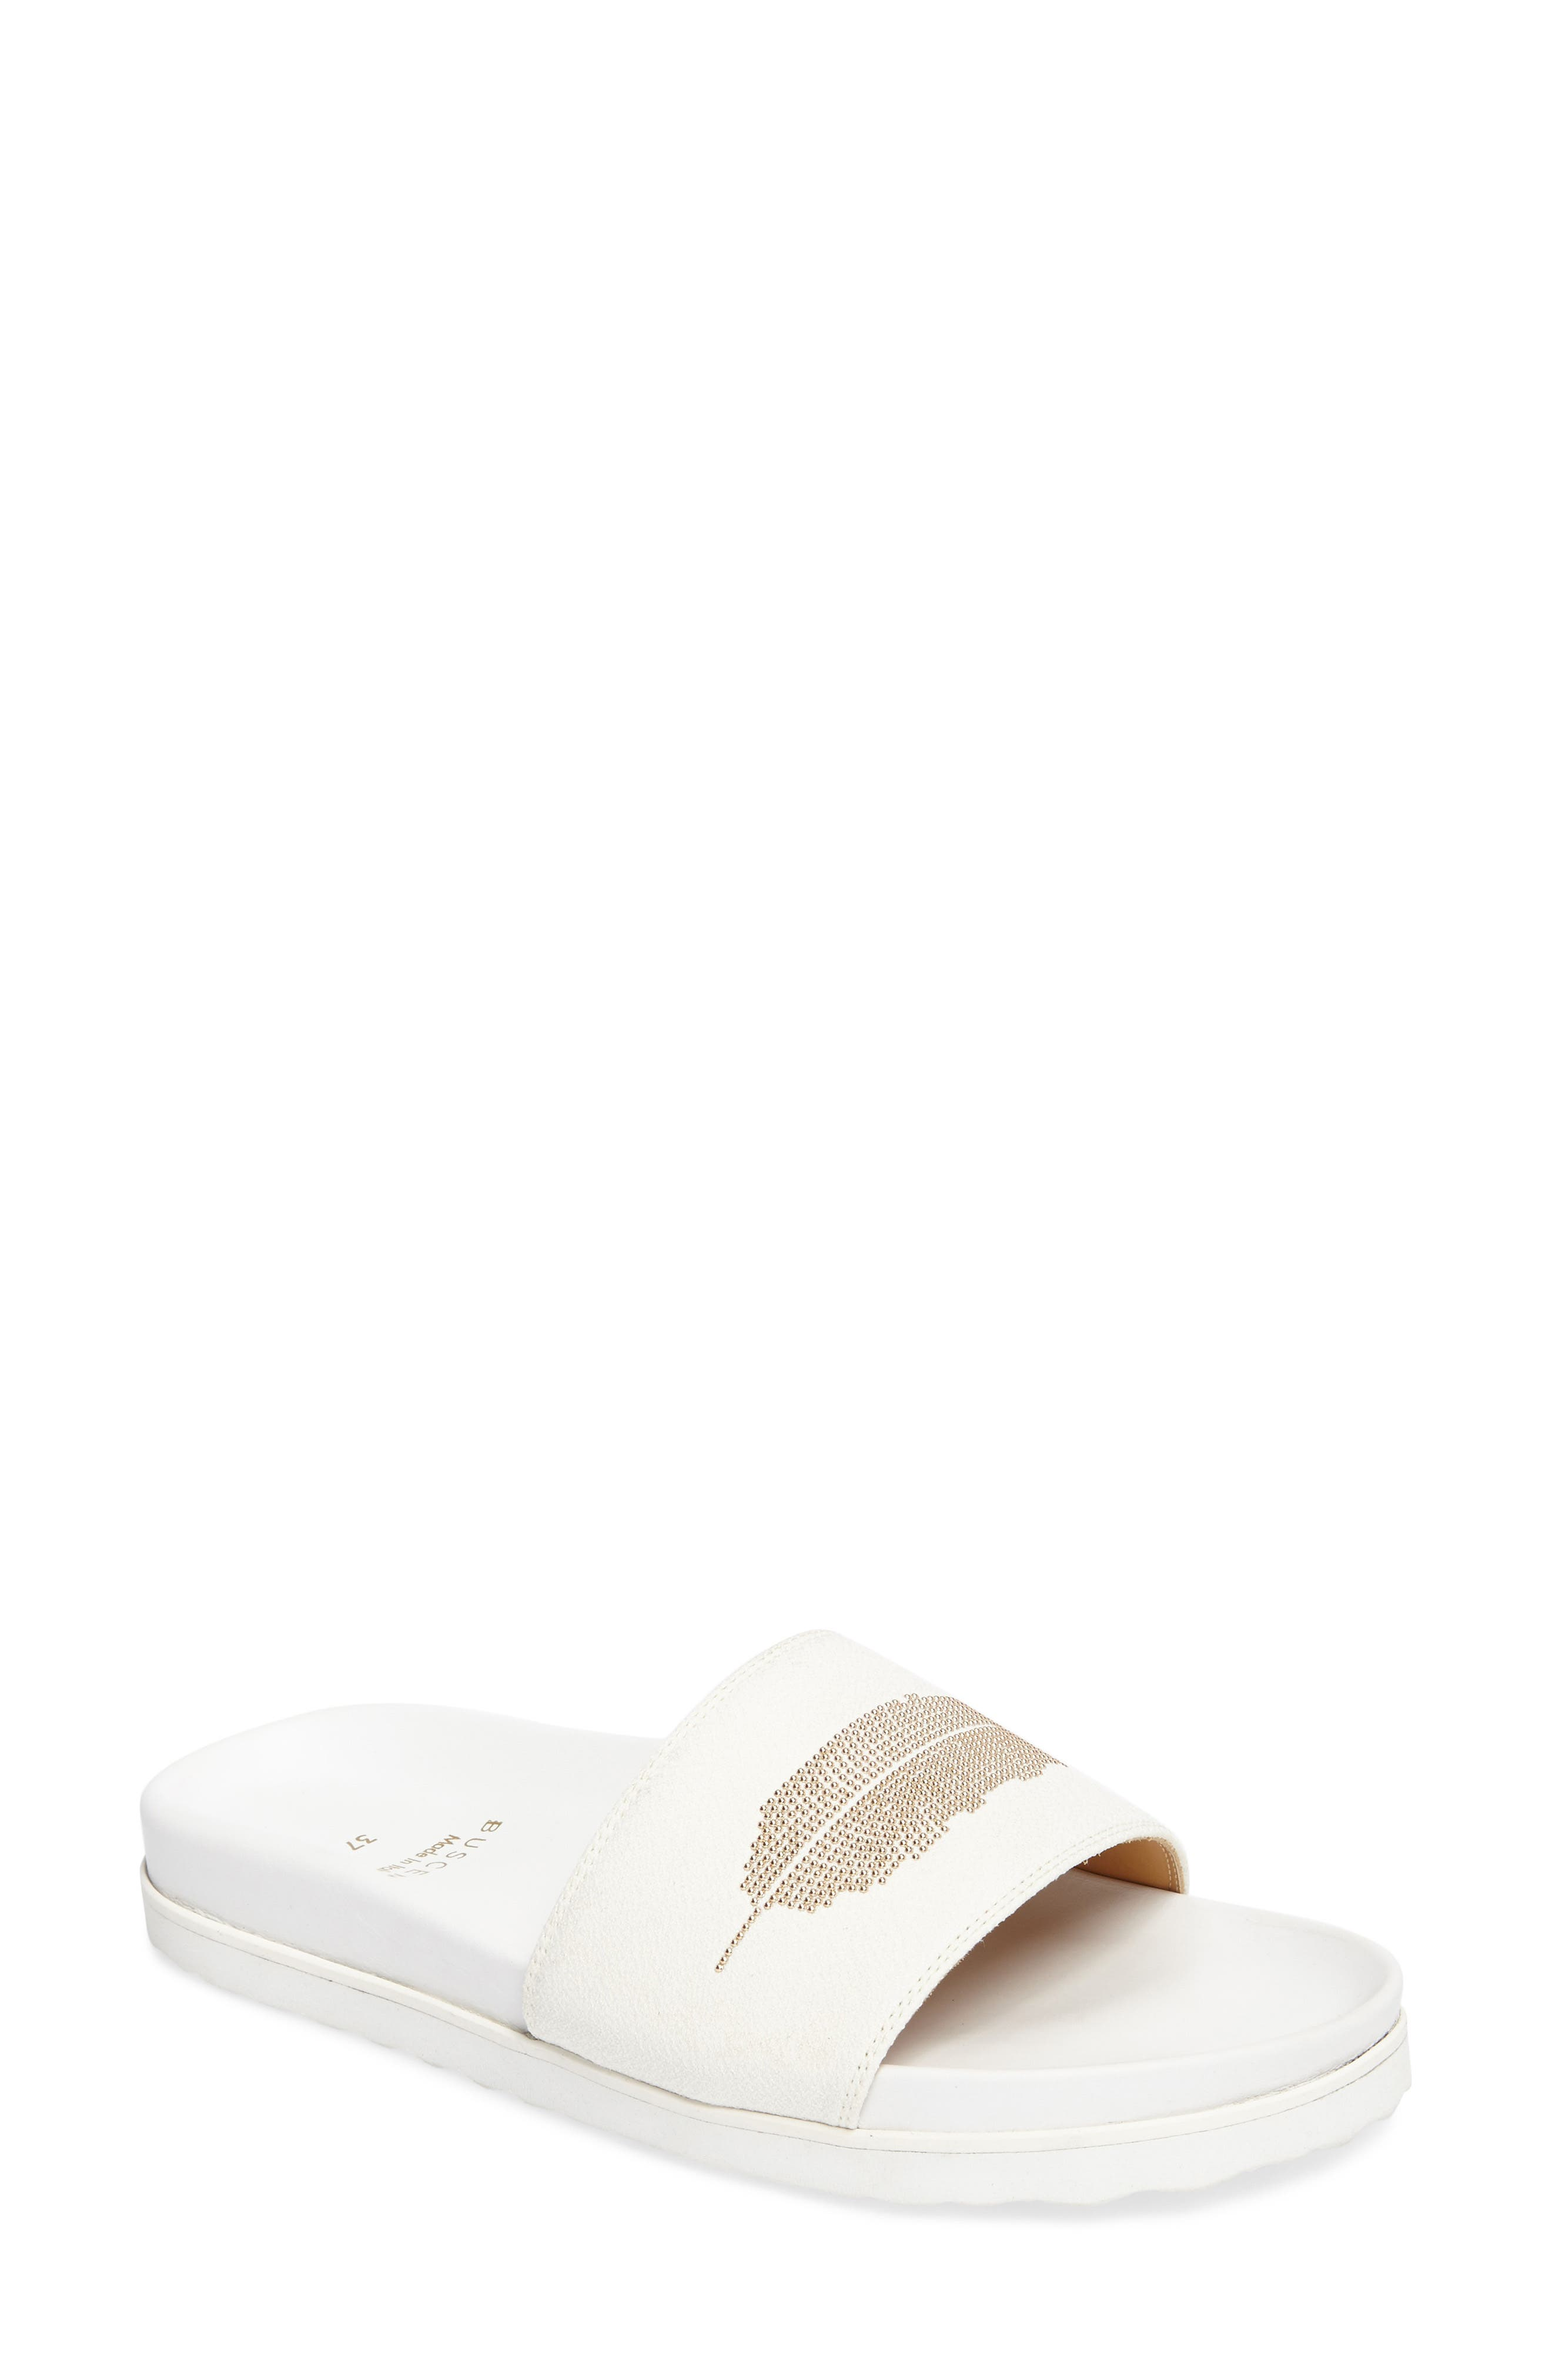 Crepone Feather Slide Sandal,                             Main thumbnail 1, color,